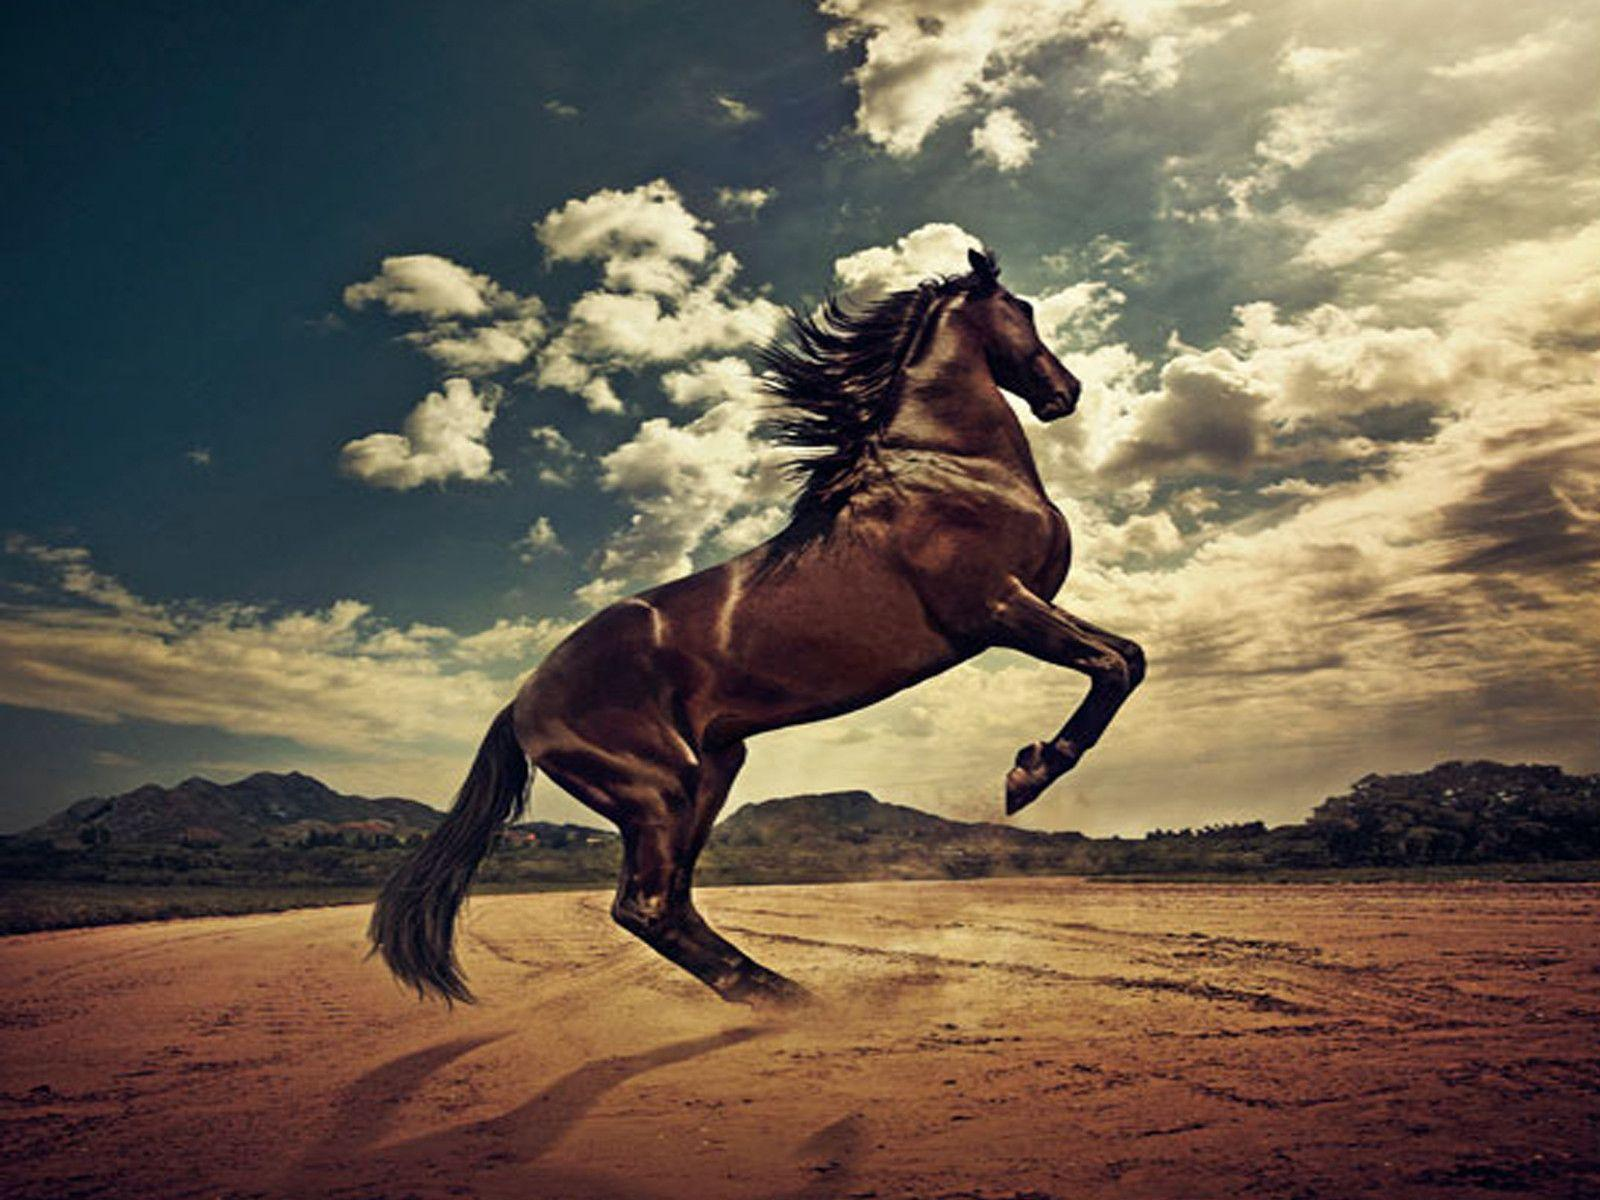 horse wallpapers for laptop - photo #49